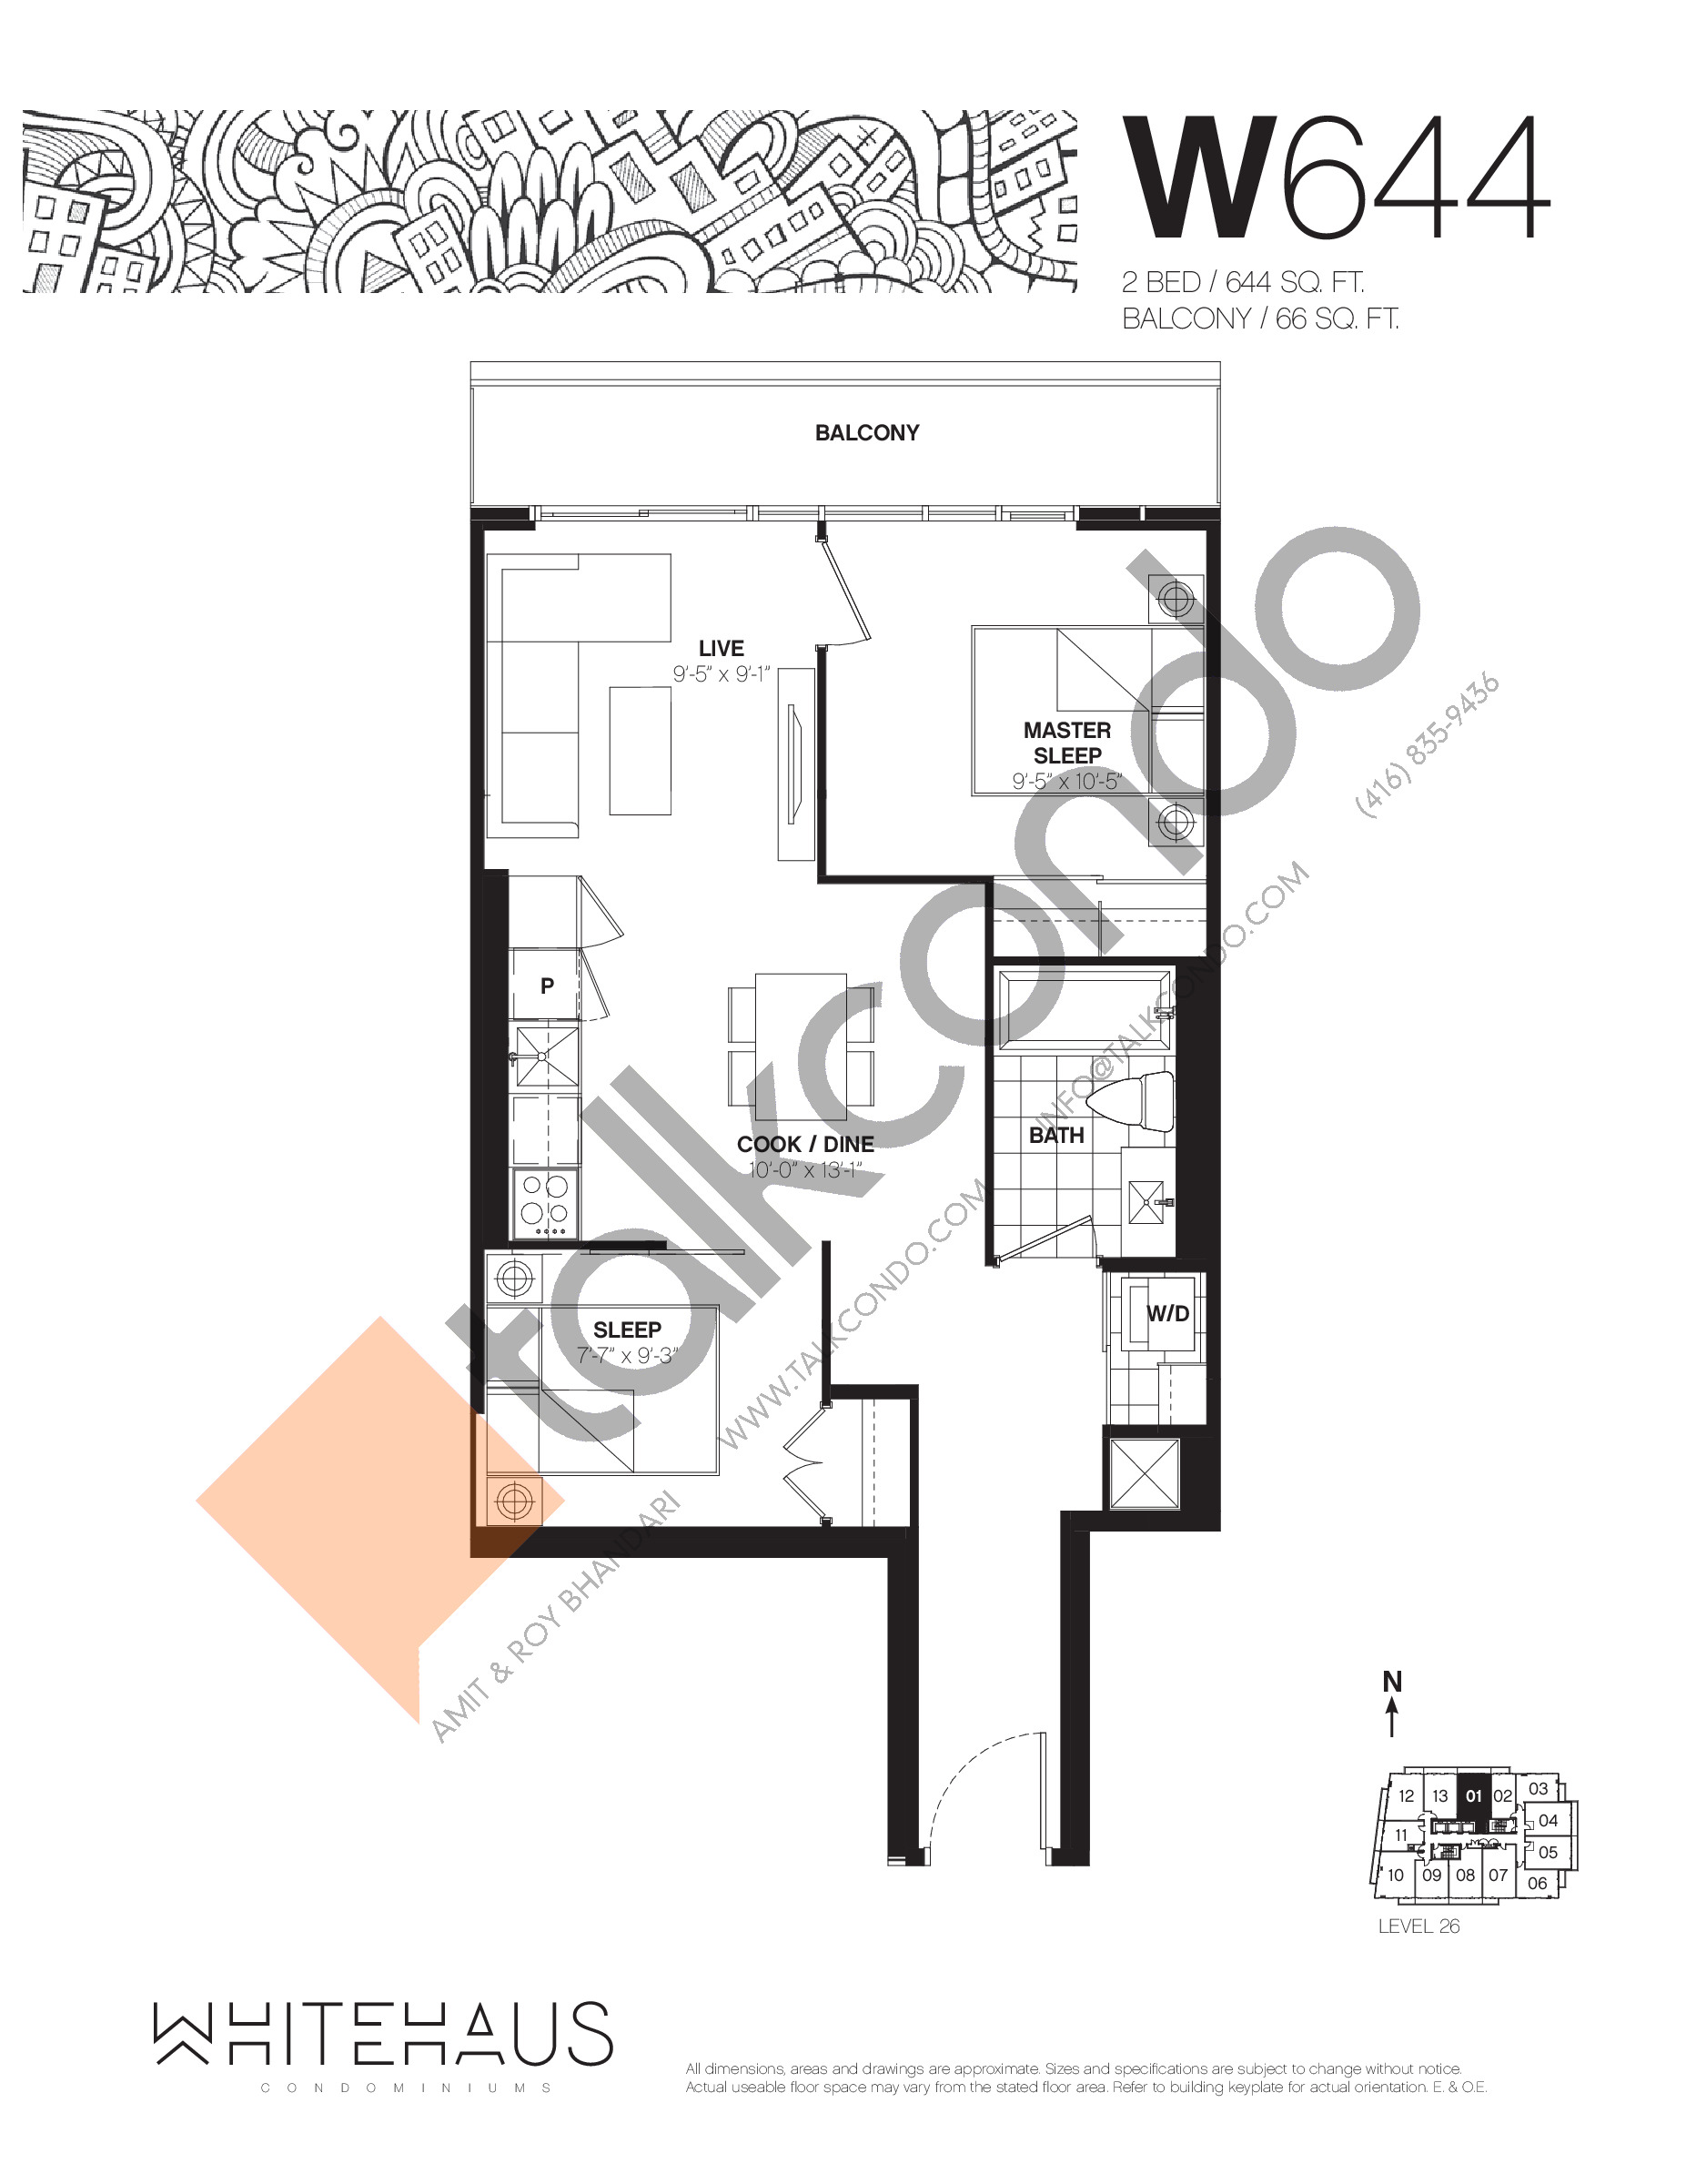 W644 Floor Plan at Whitehaus Condos - 644 sq.ft